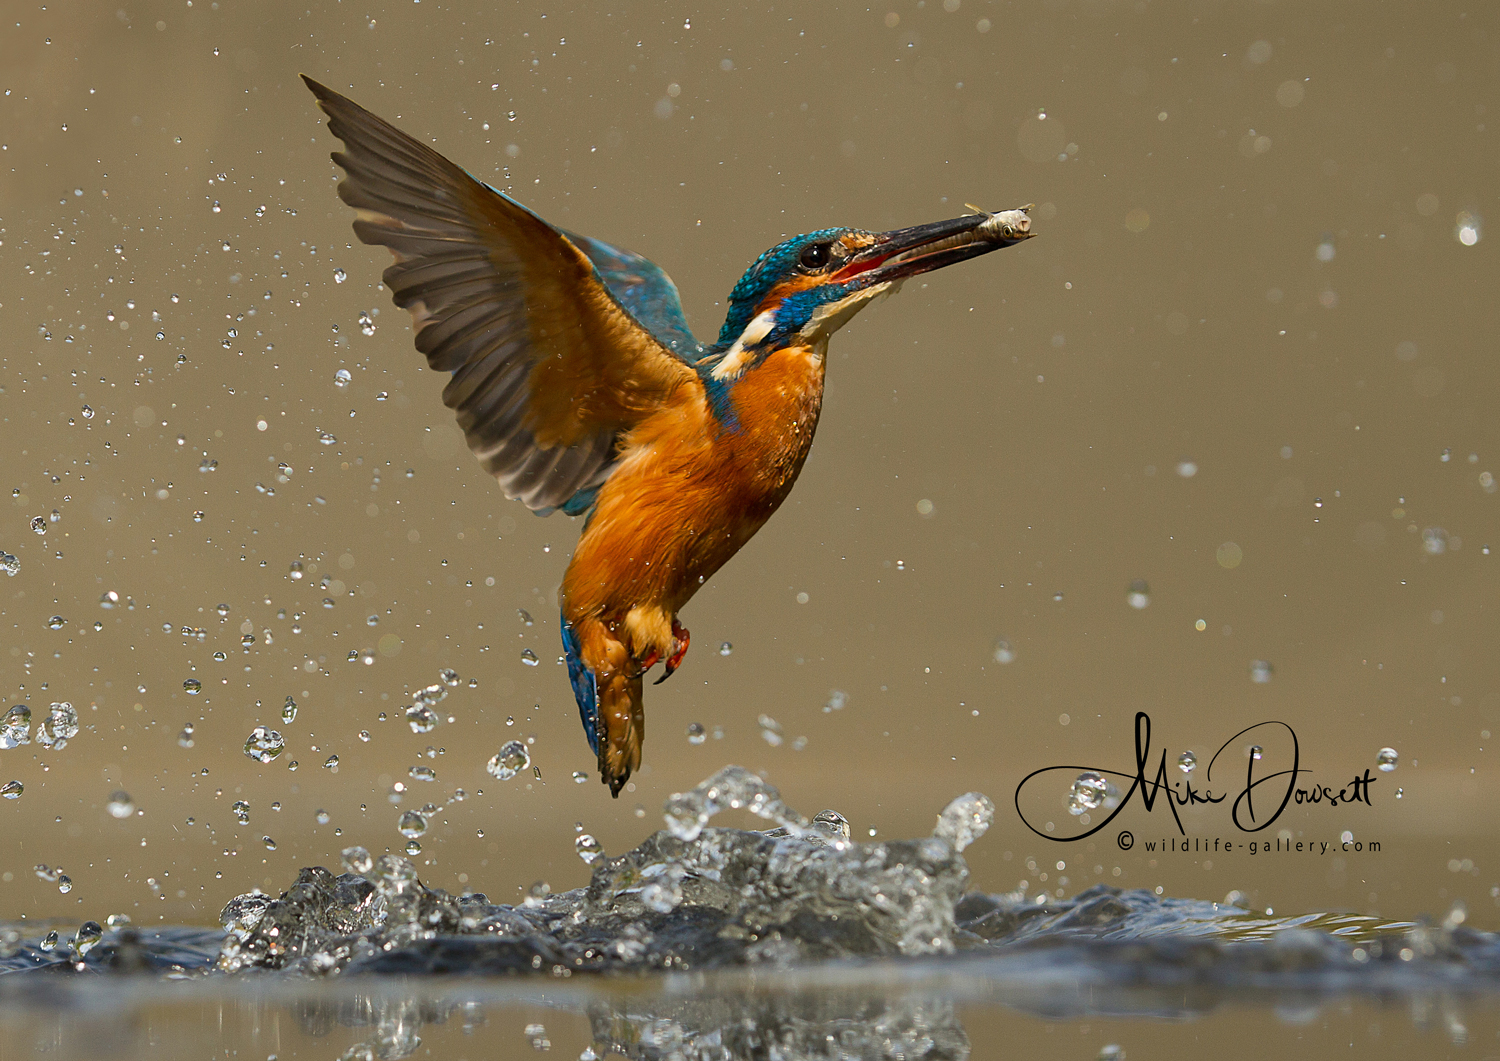 Kingfisher with fish exploding from the water